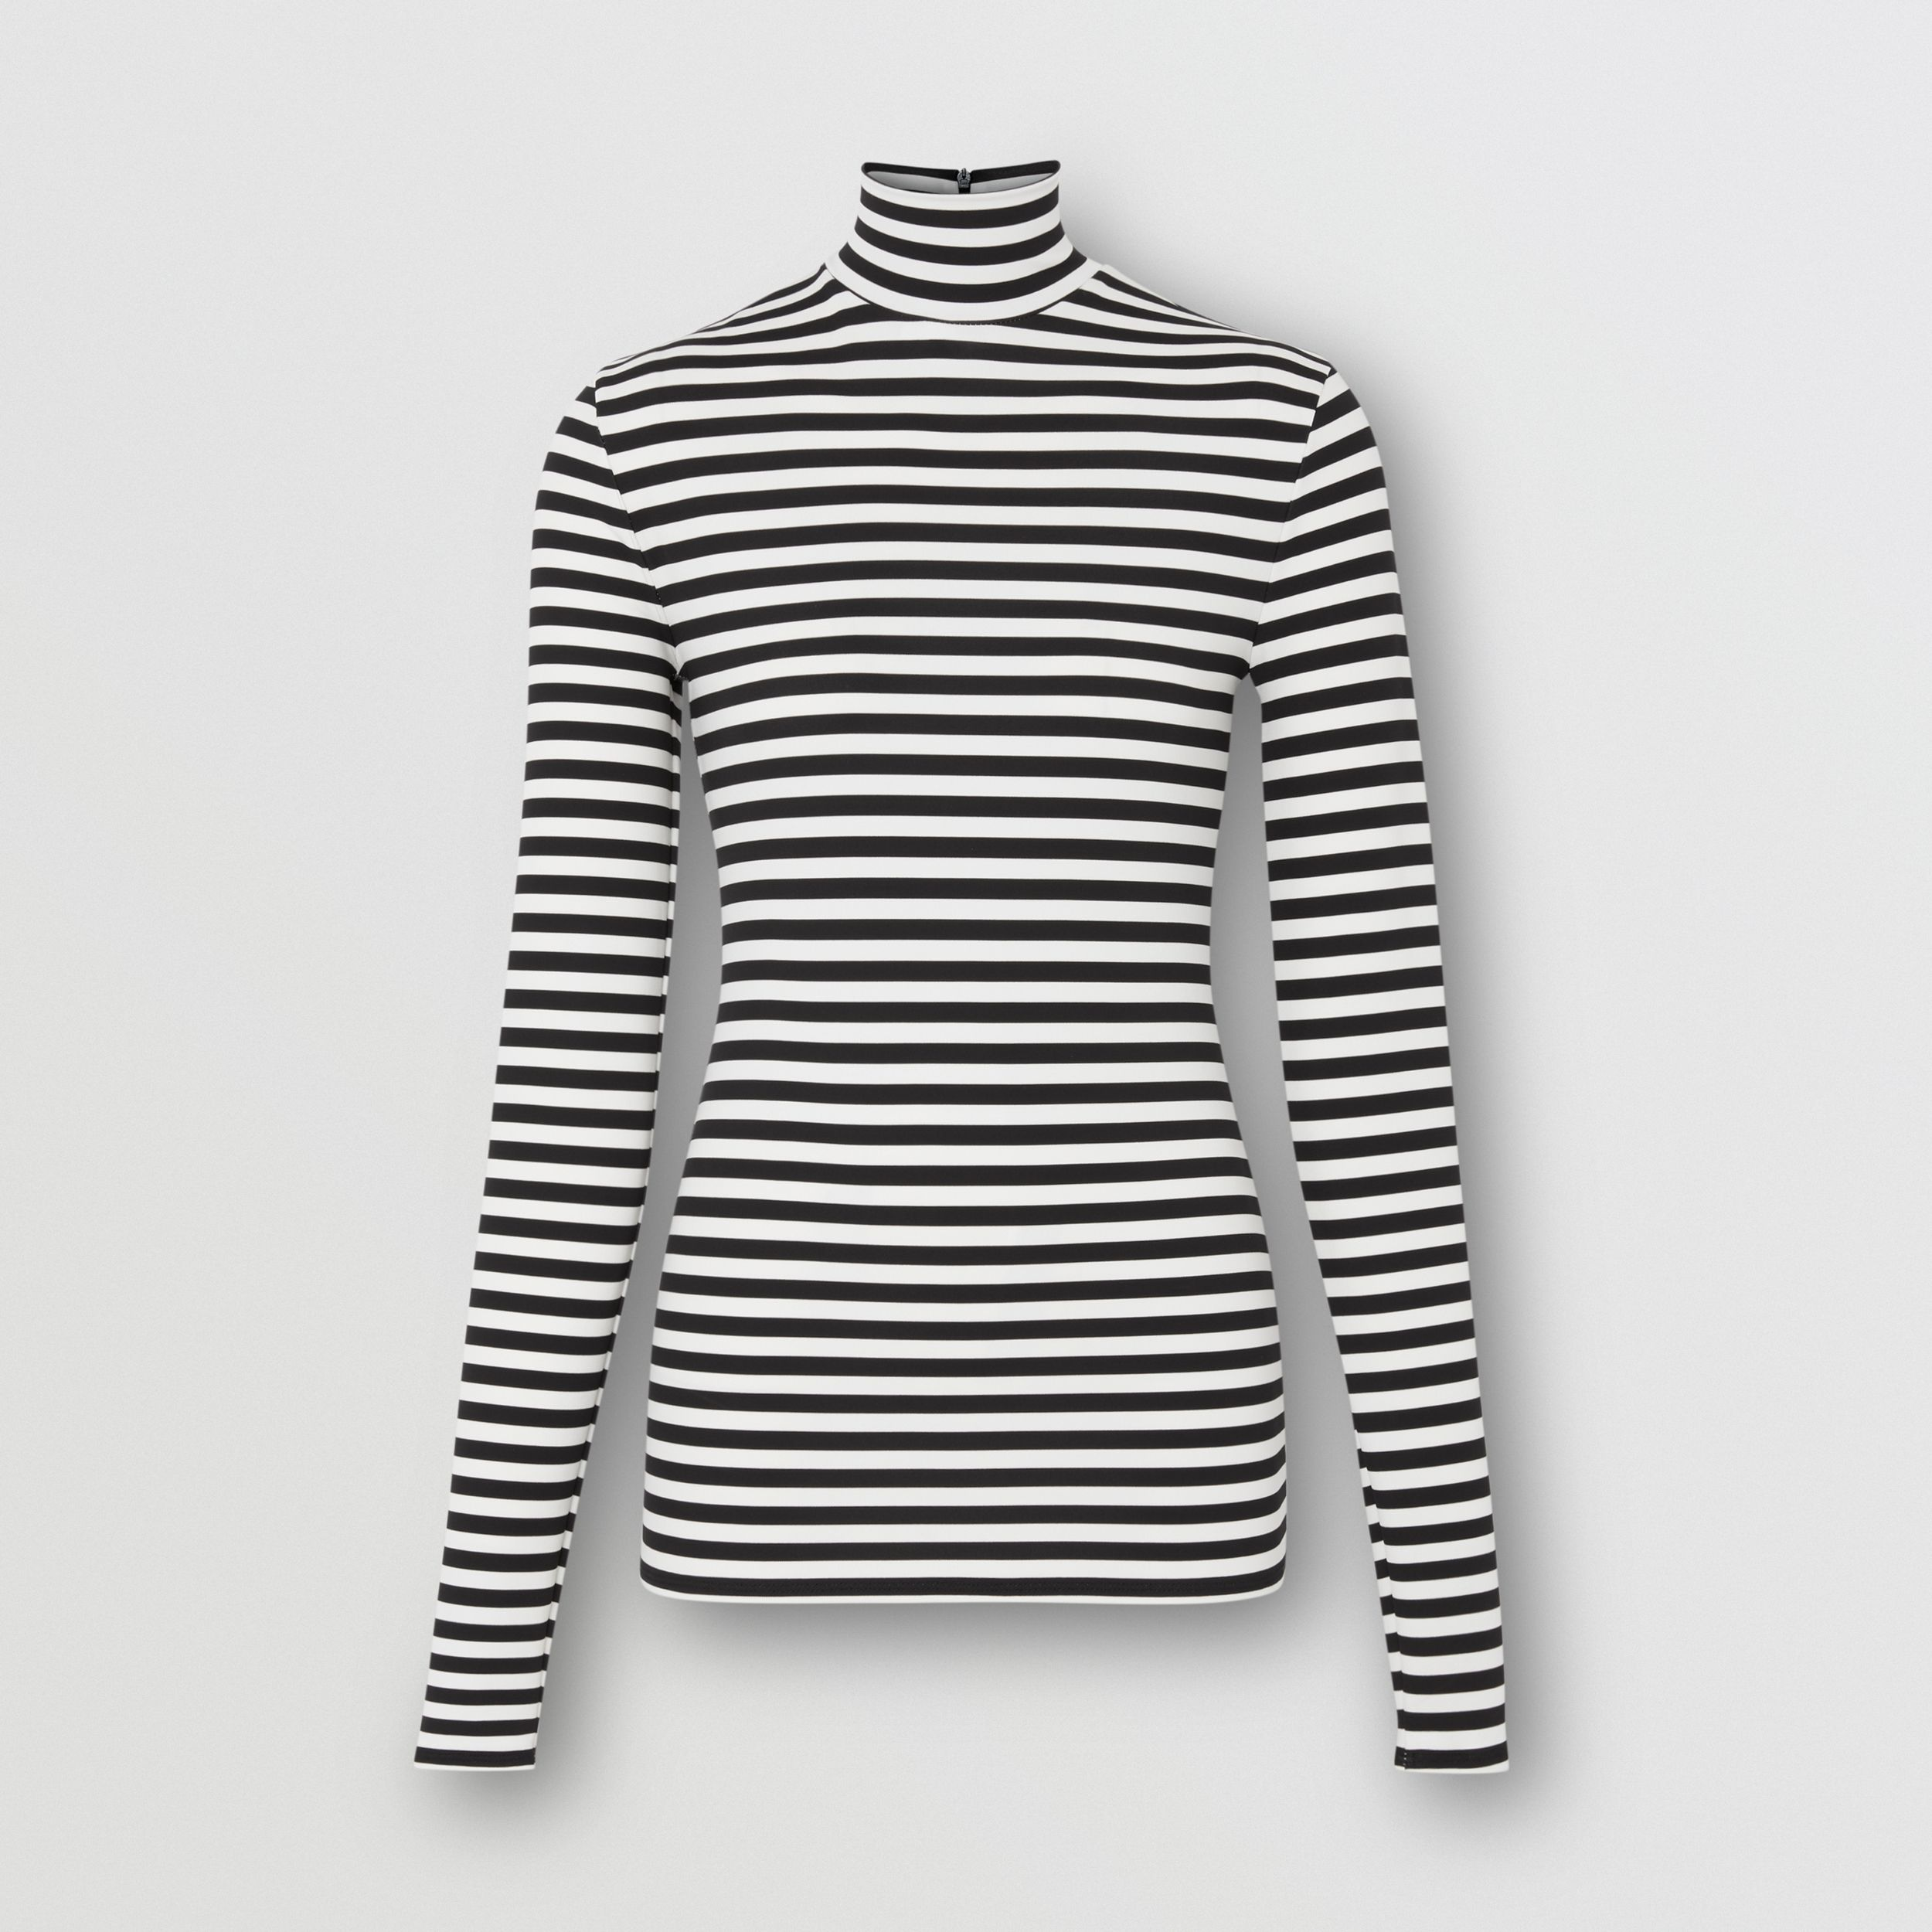 Striped Stretch Jersey Turtleneck Top in Black/white - Women | Burberry - 4